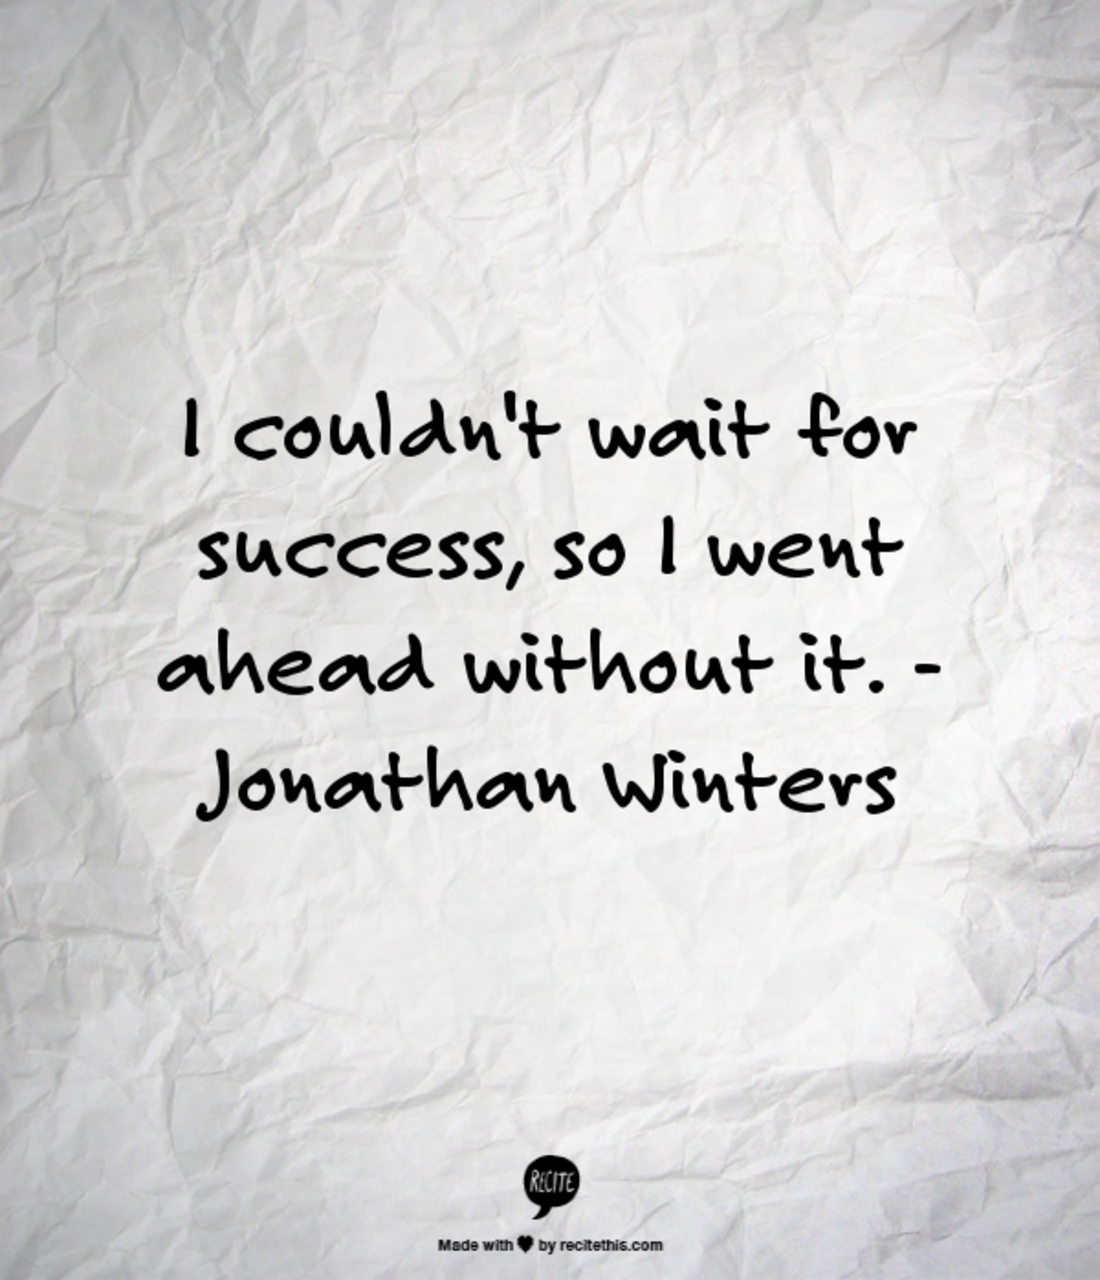 I couldn't wait for success, so I went ahead without it. - Jonathan Winters #quote